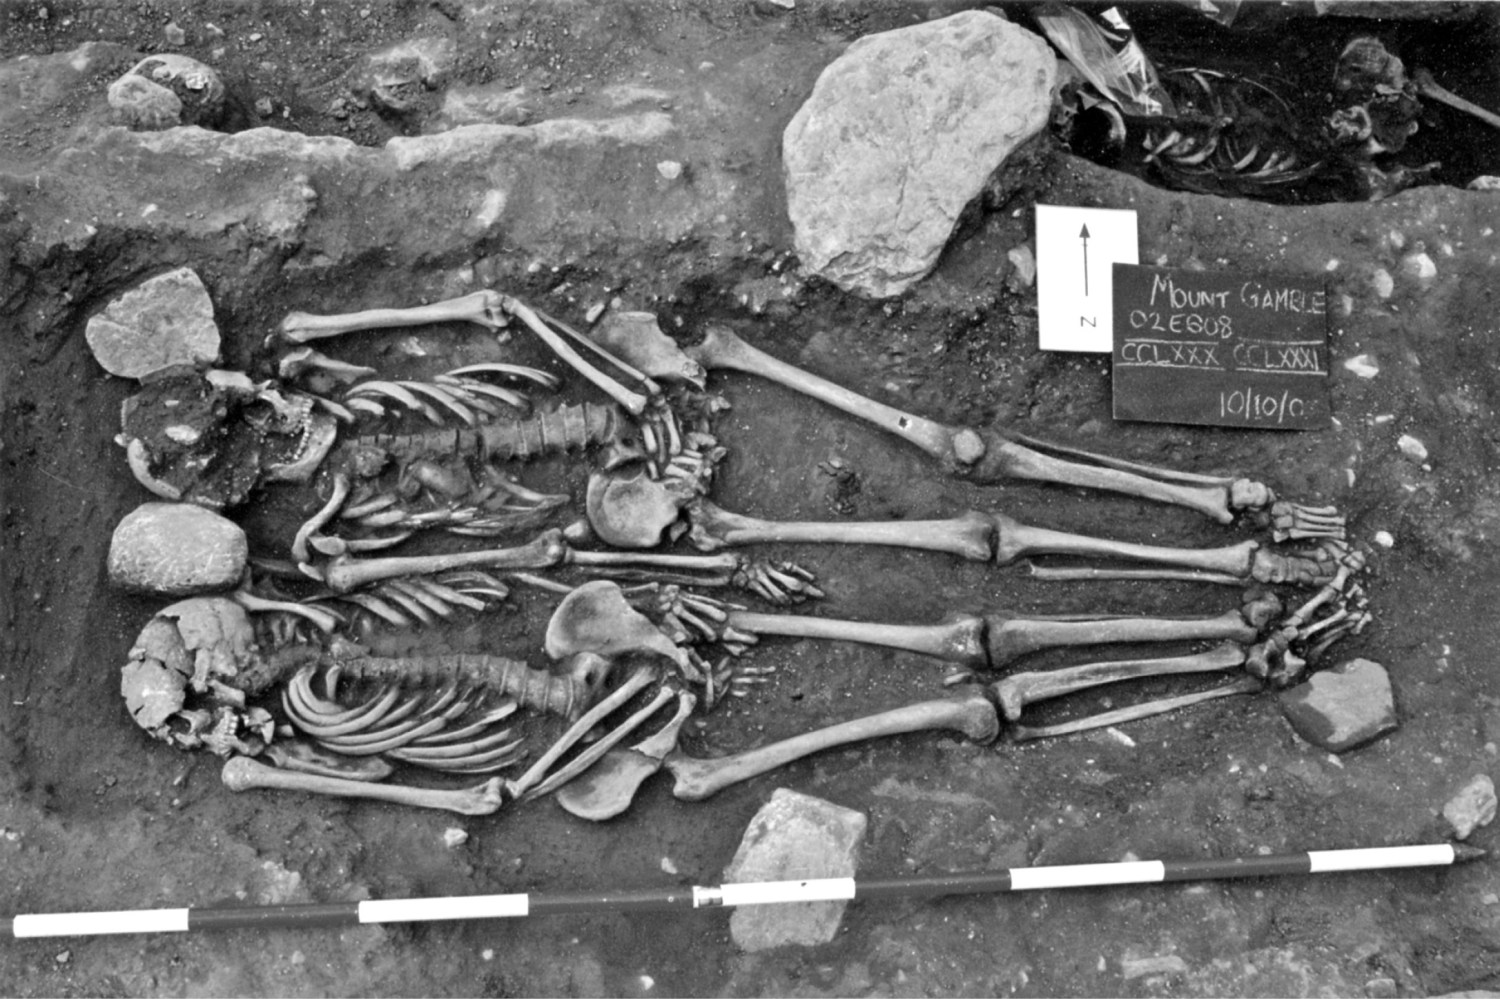 BELOW A rare example of a male double burial at Mount Gamble, Swords, Co. Dublin. Both males are 25 to 35 years of age, date from the 7th/8th centuries AD, and died from severe weapon trauma. One has been decapitated, though his head was placed in the correct anatomical position for burial, while the other suffered a fatal stab wound to the back. They might have died together in battle or a fight, or they may have been victims of ritual 'kin-slaying' the victims of a succession dispute.